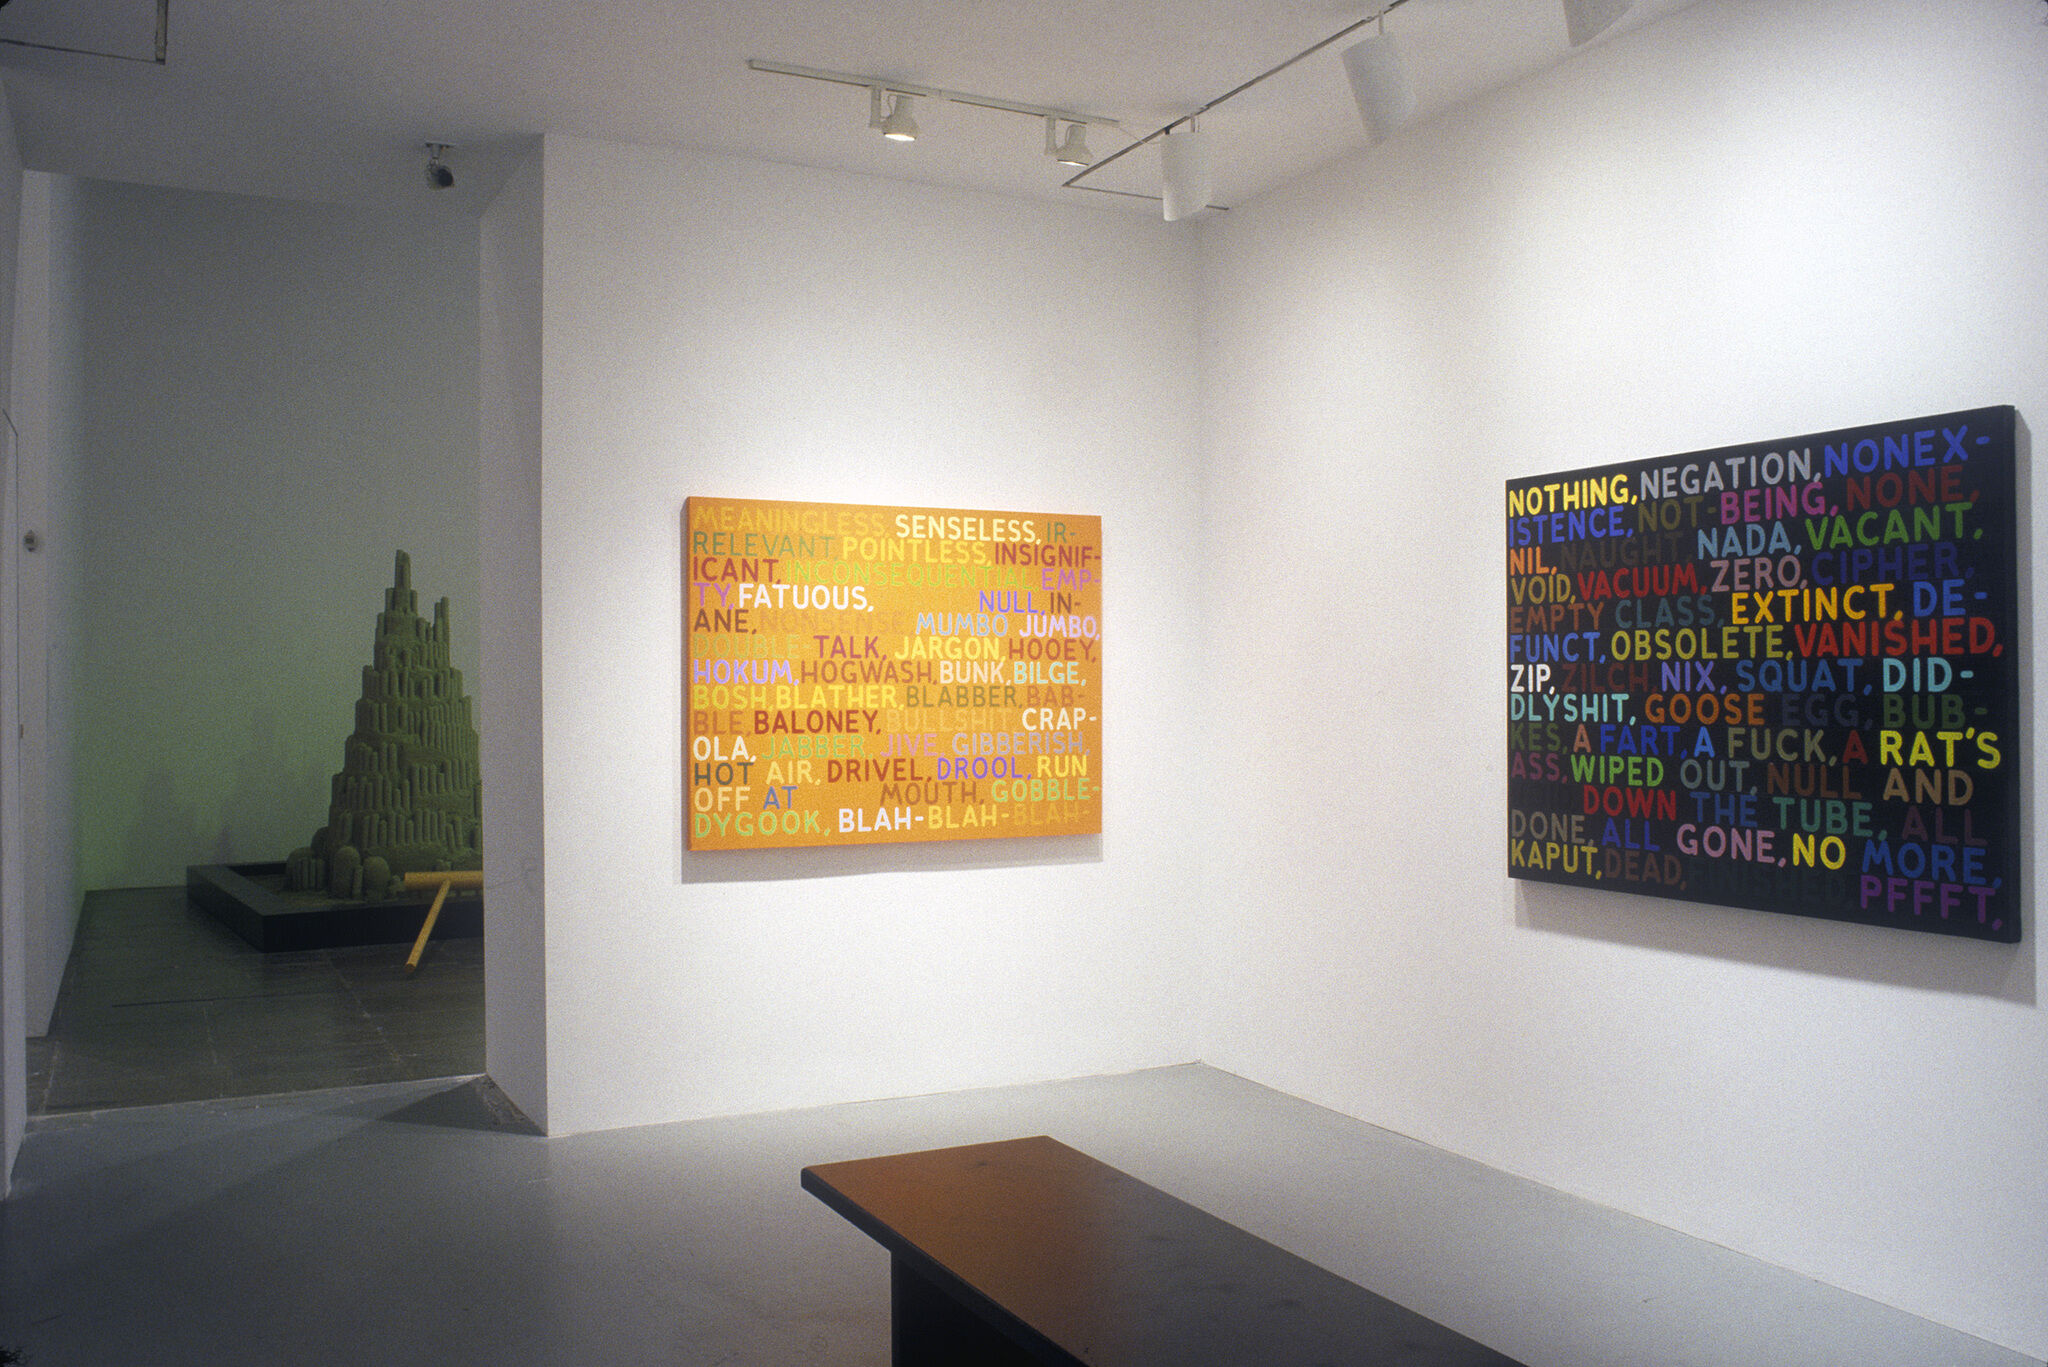 An orange painting covered in text, along with a black paintings covered in text.